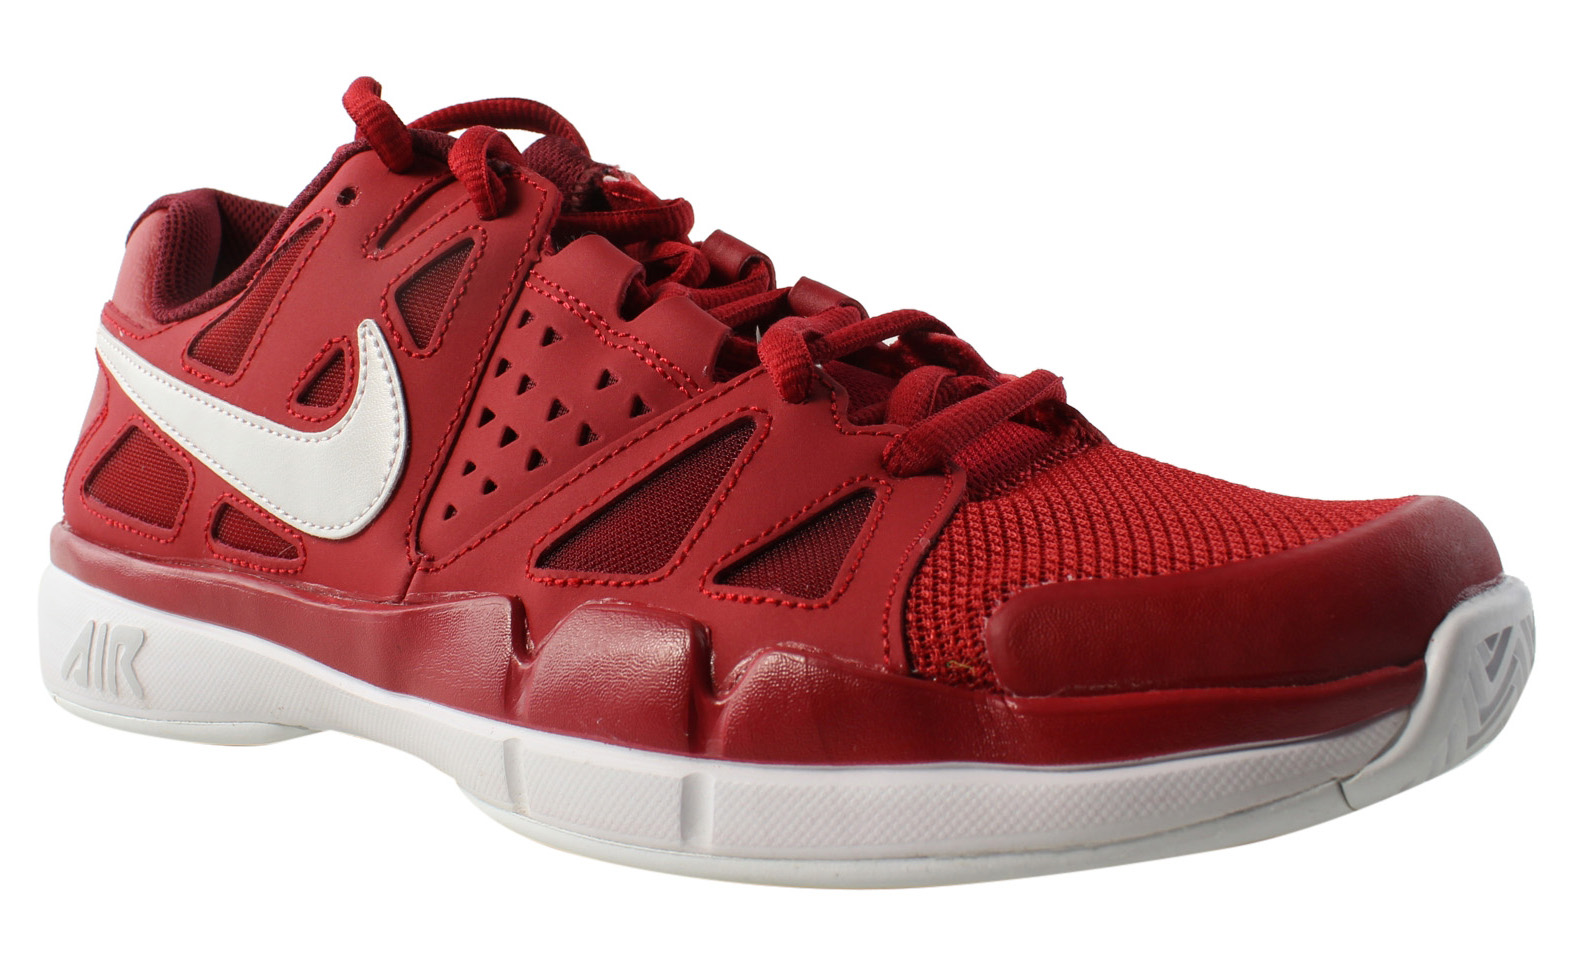 Nike Mens Air Vapor Advantage Red Running Shoes Size 10 (304471)